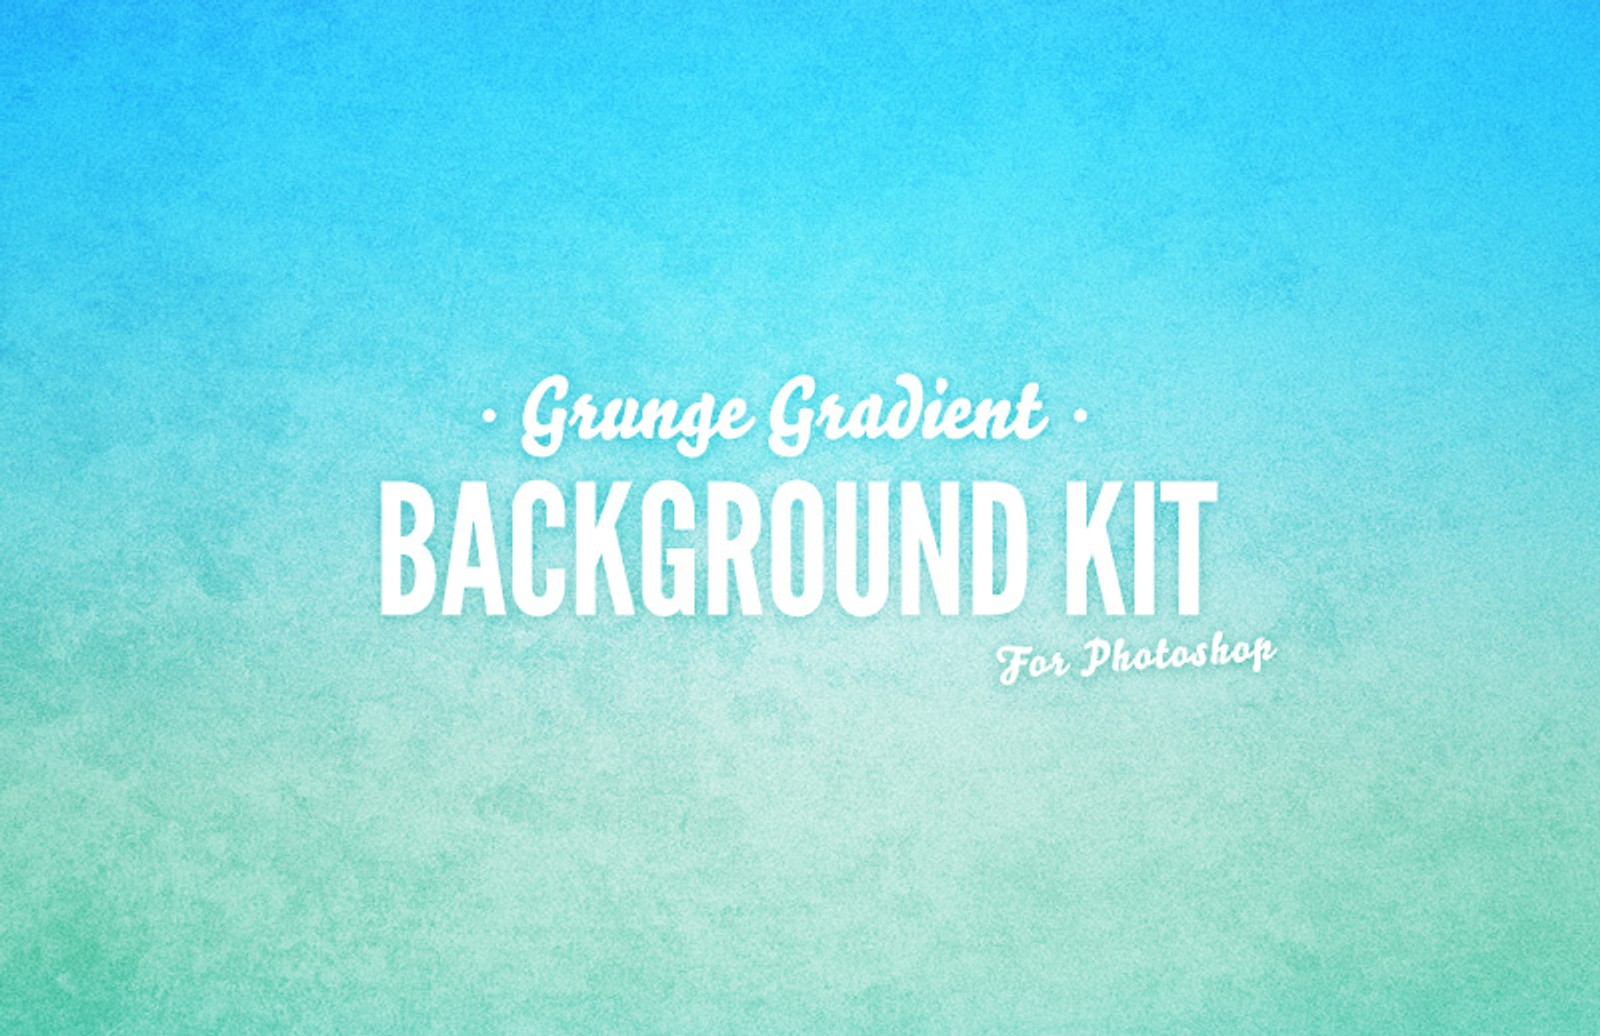 Grunge  Gradient  Background  Kit  Preview 1